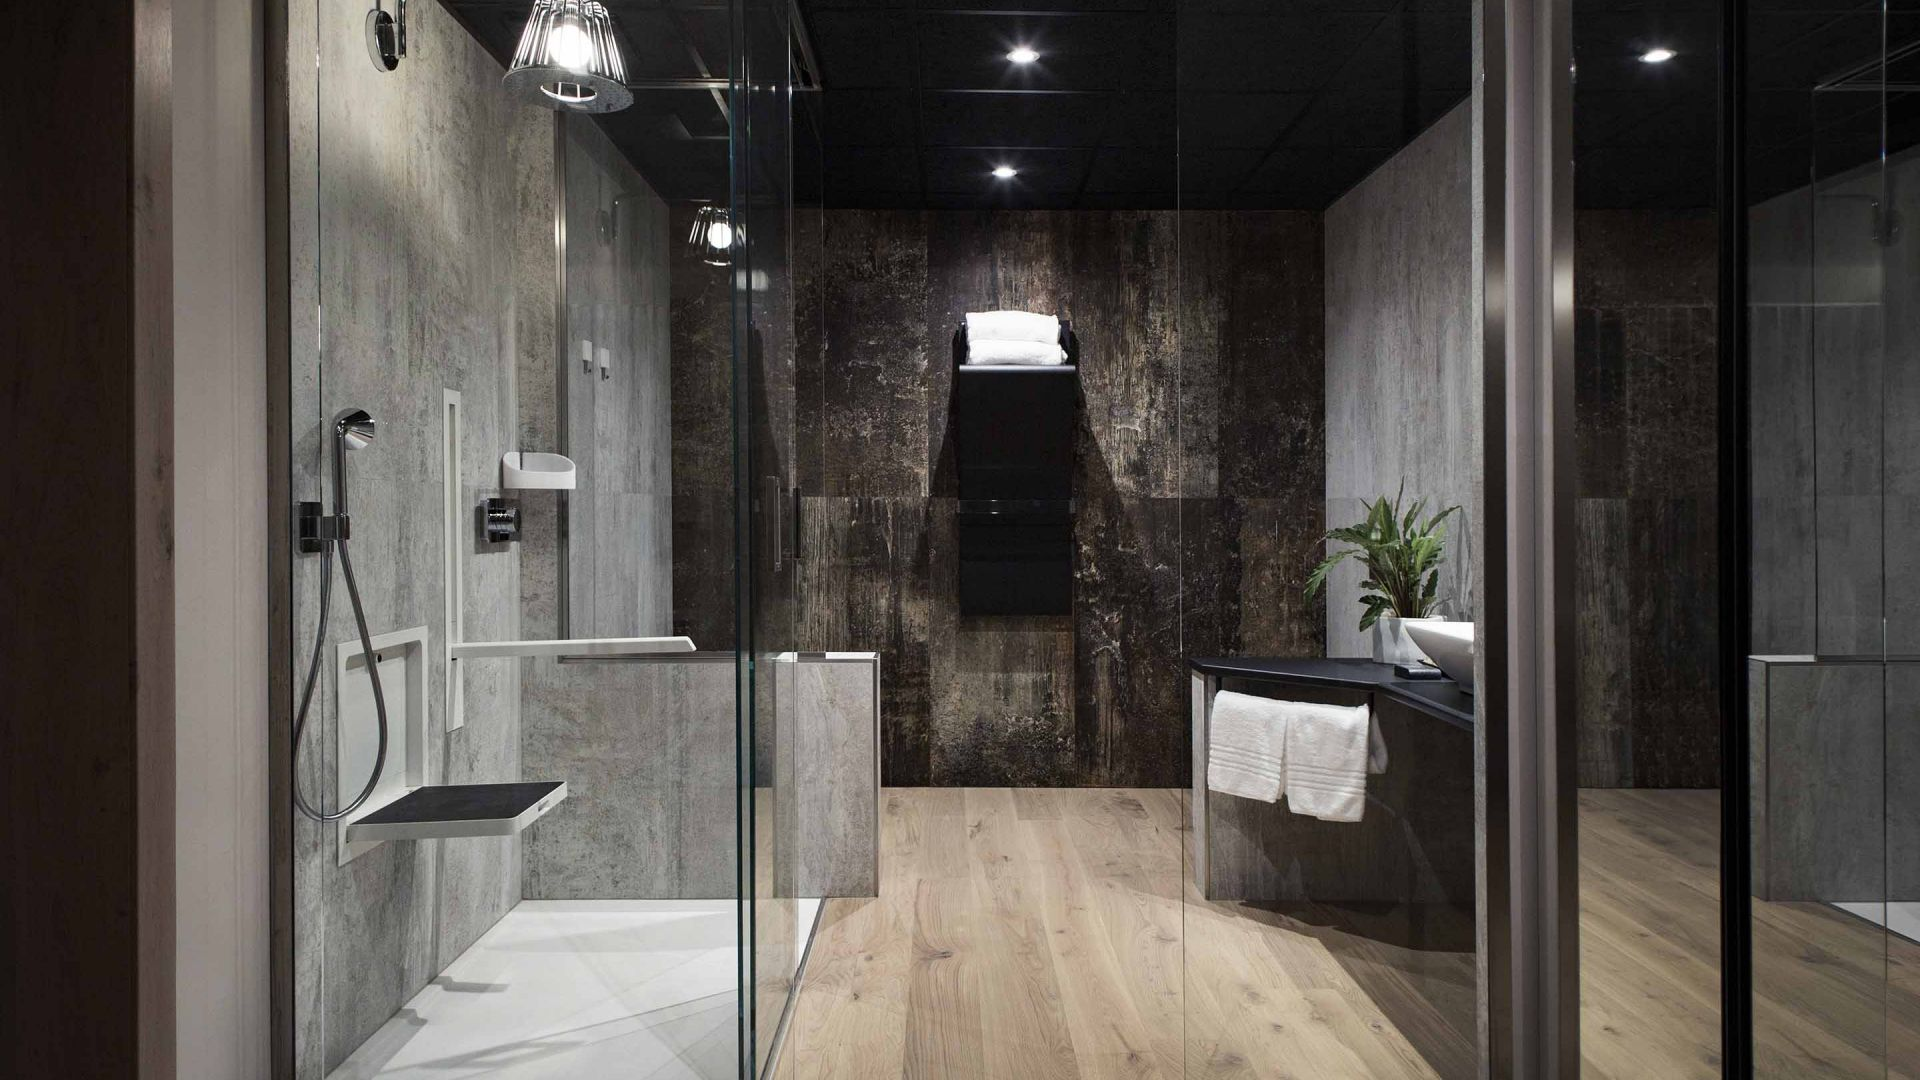 Design For All for Bathroom